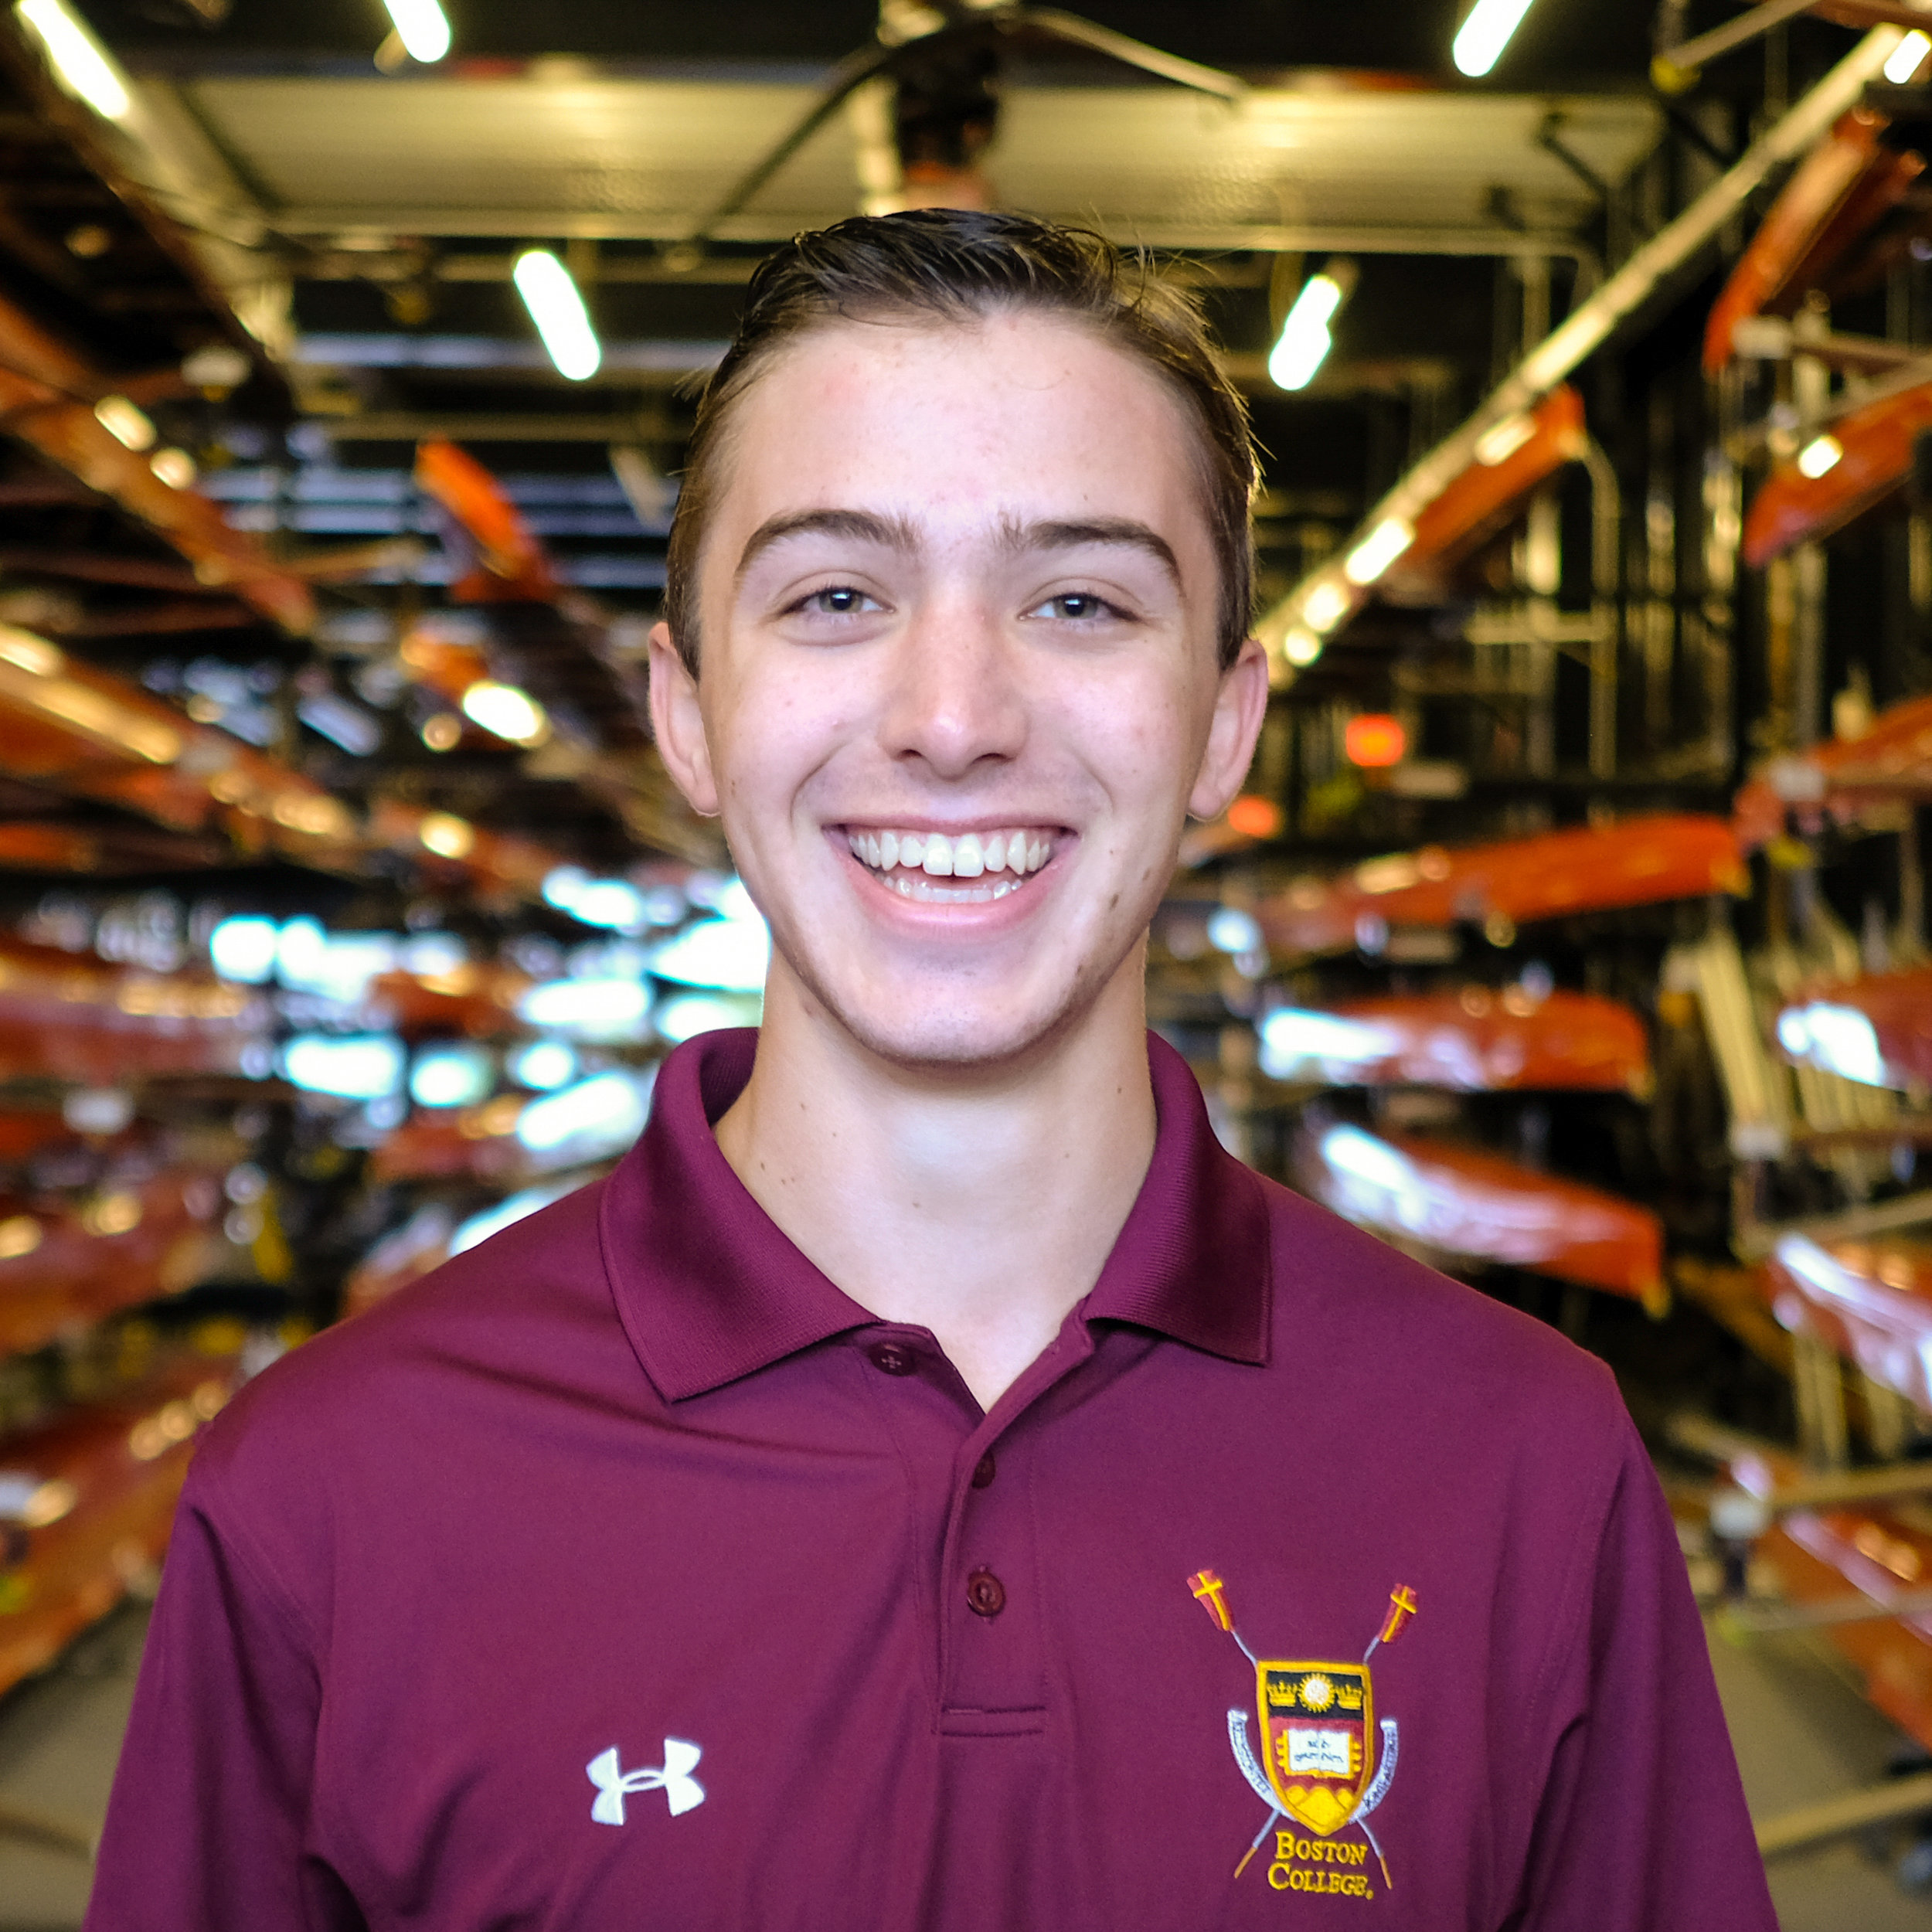 """Brett Weisberg - Hometown: Manhasset, NYClass: 2022Height: 5'10"""" Weight: 160Bio: Brett began his rowing career as a freshman with Manhasset High School where he won a New York State Championship in the Men's Lightweight 8+ in 2017 and was the SRAA National Champion in the Men's Lightweight 4+ in 2018. At BC, Brett is currently studying Political Science with a minor in Finance."""